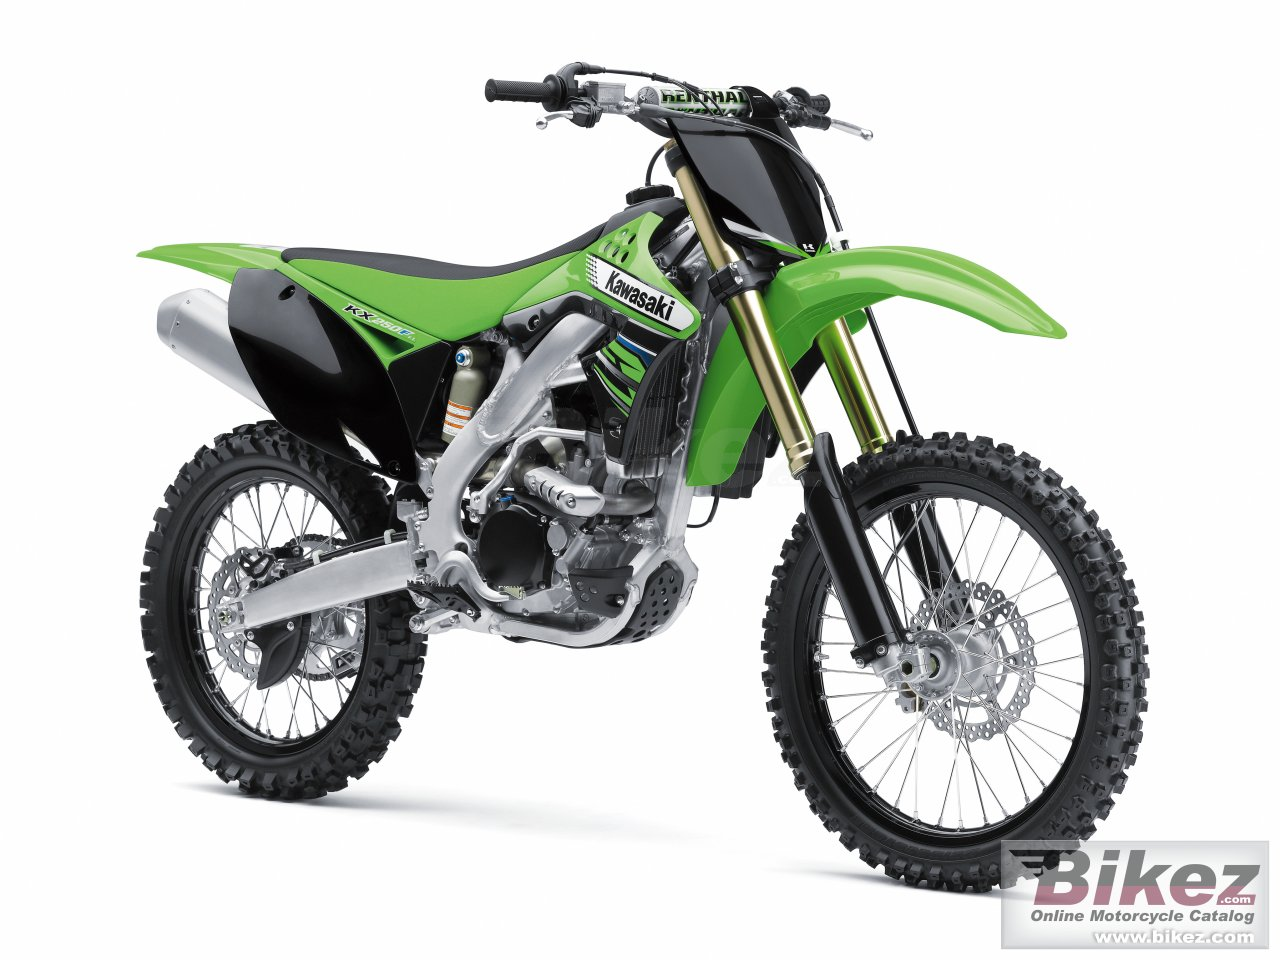 Big Kawasaki kx 250f picture and wallpaper from Bikez.com